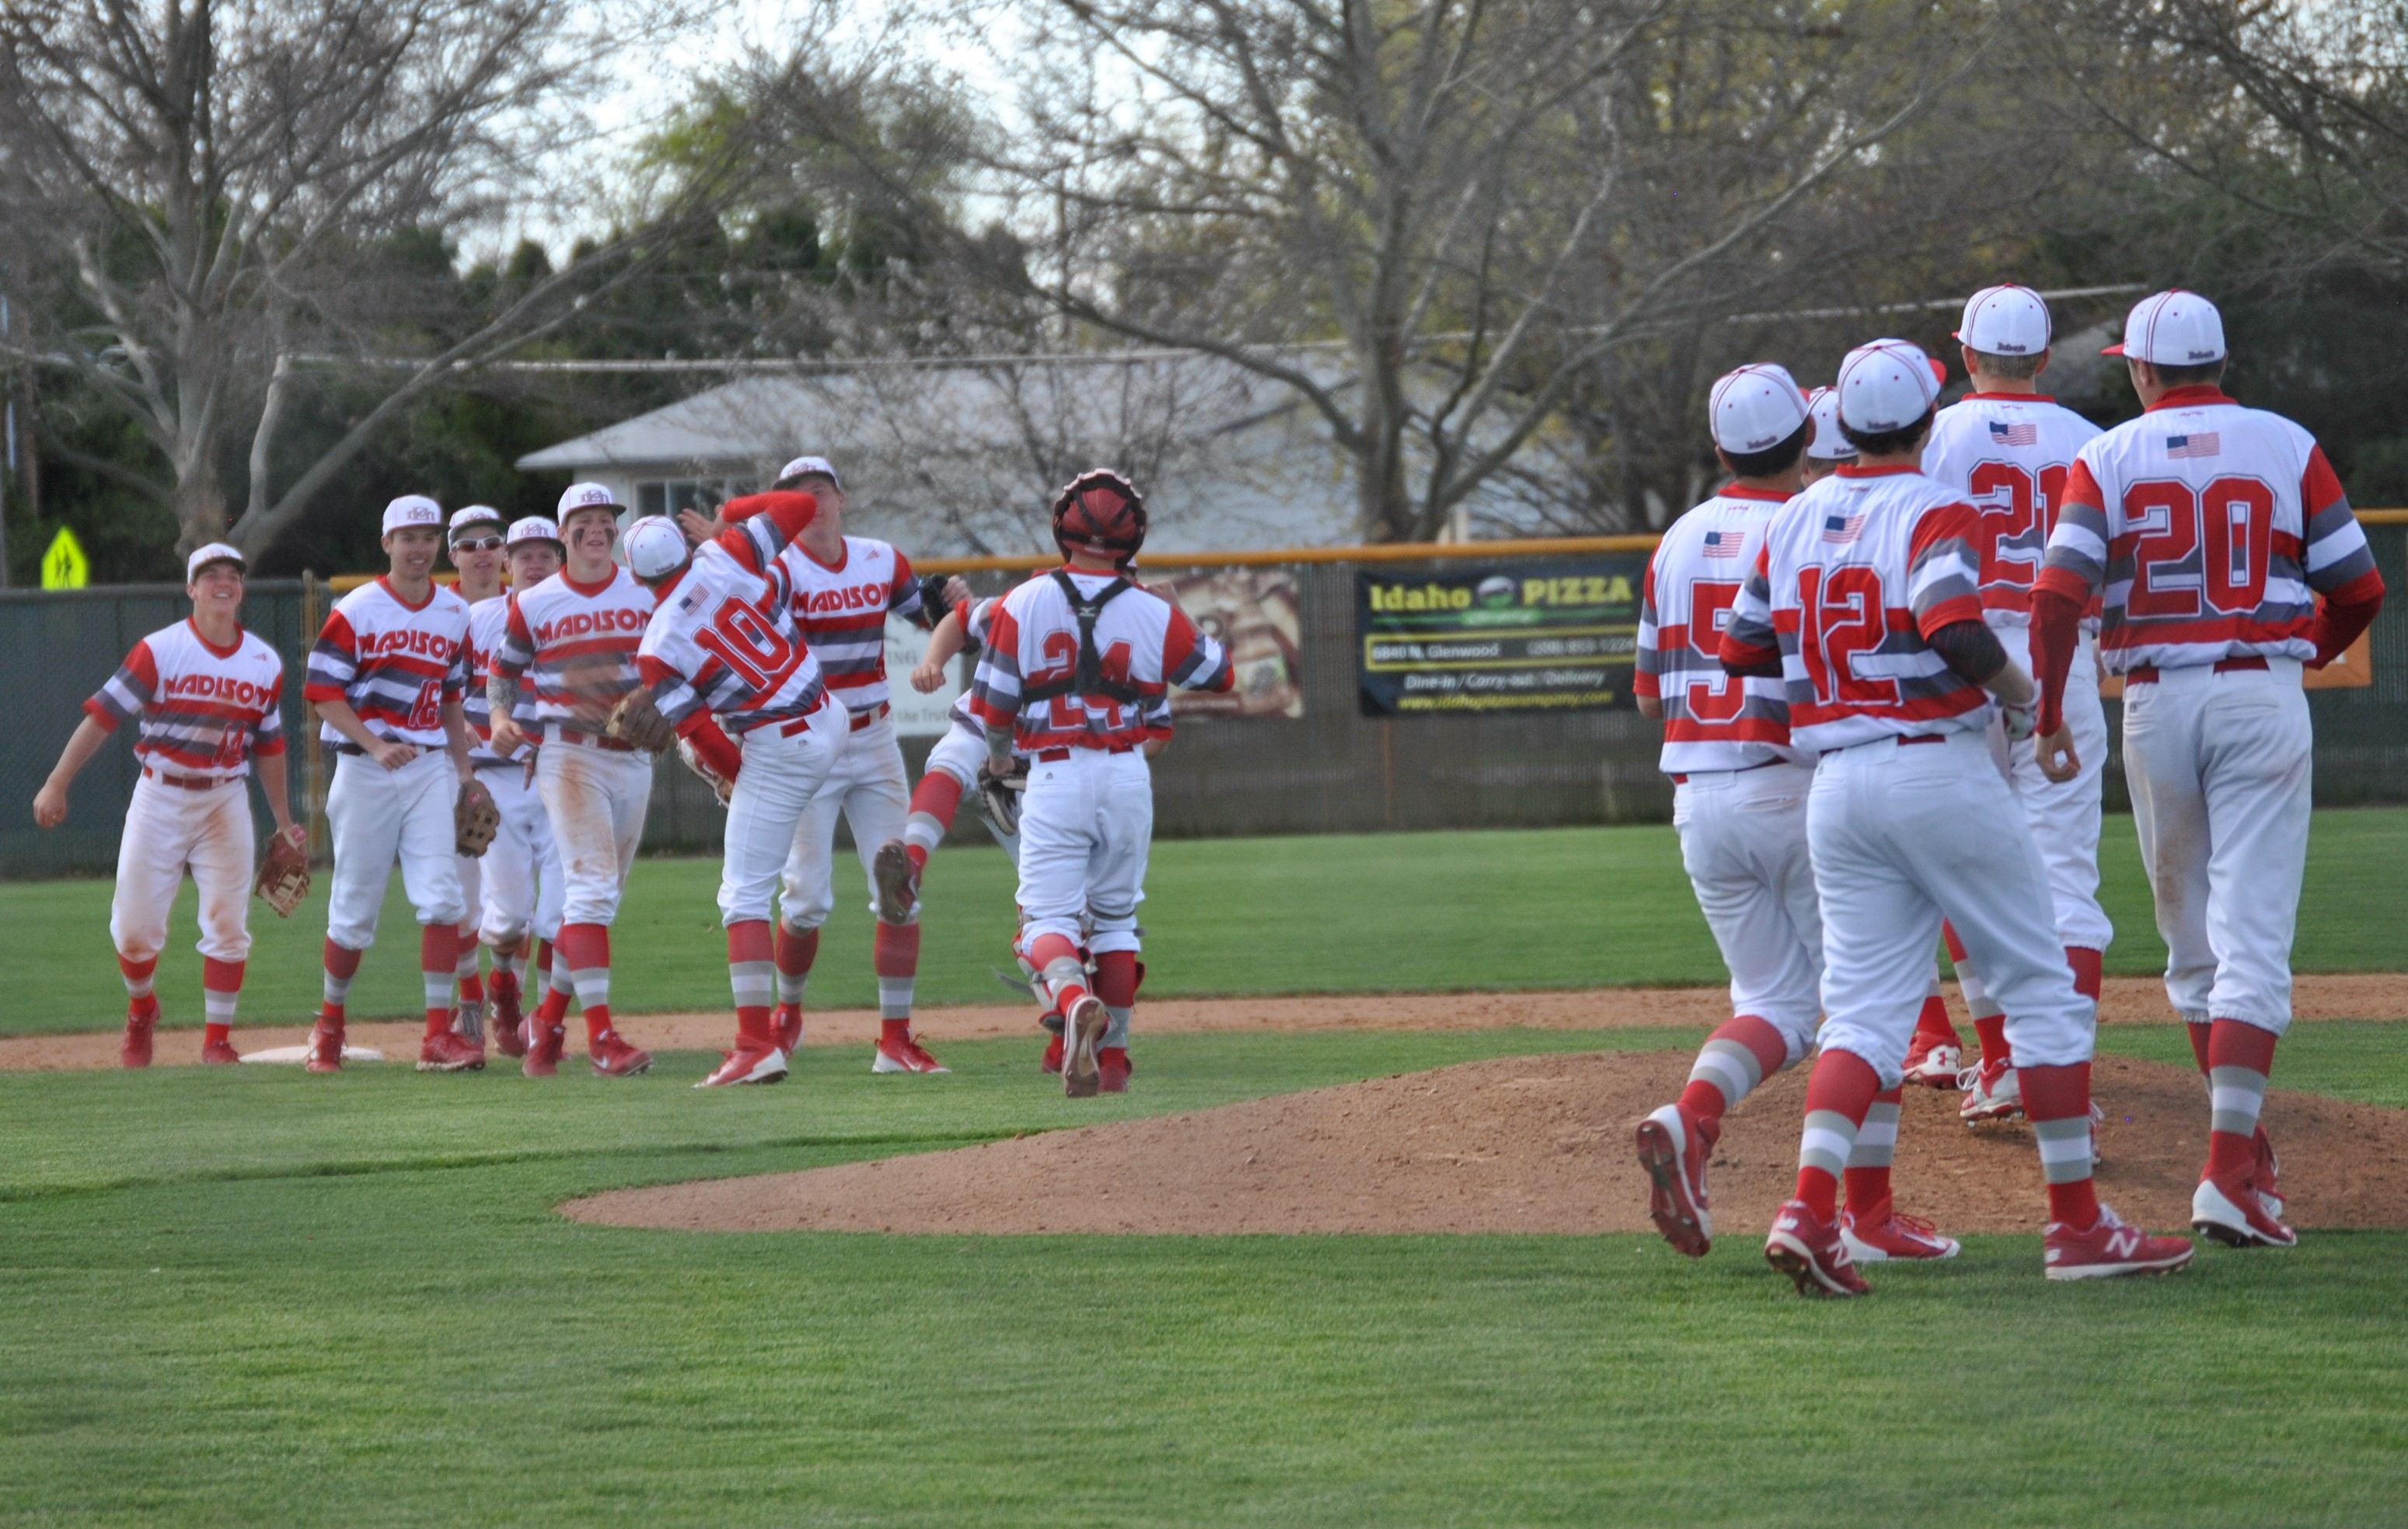 Madison's varsity team celebrating in style after Matt Bolingbroke threw a complete game against Capital in Boise. Courtesy photo: Ginger Crawford